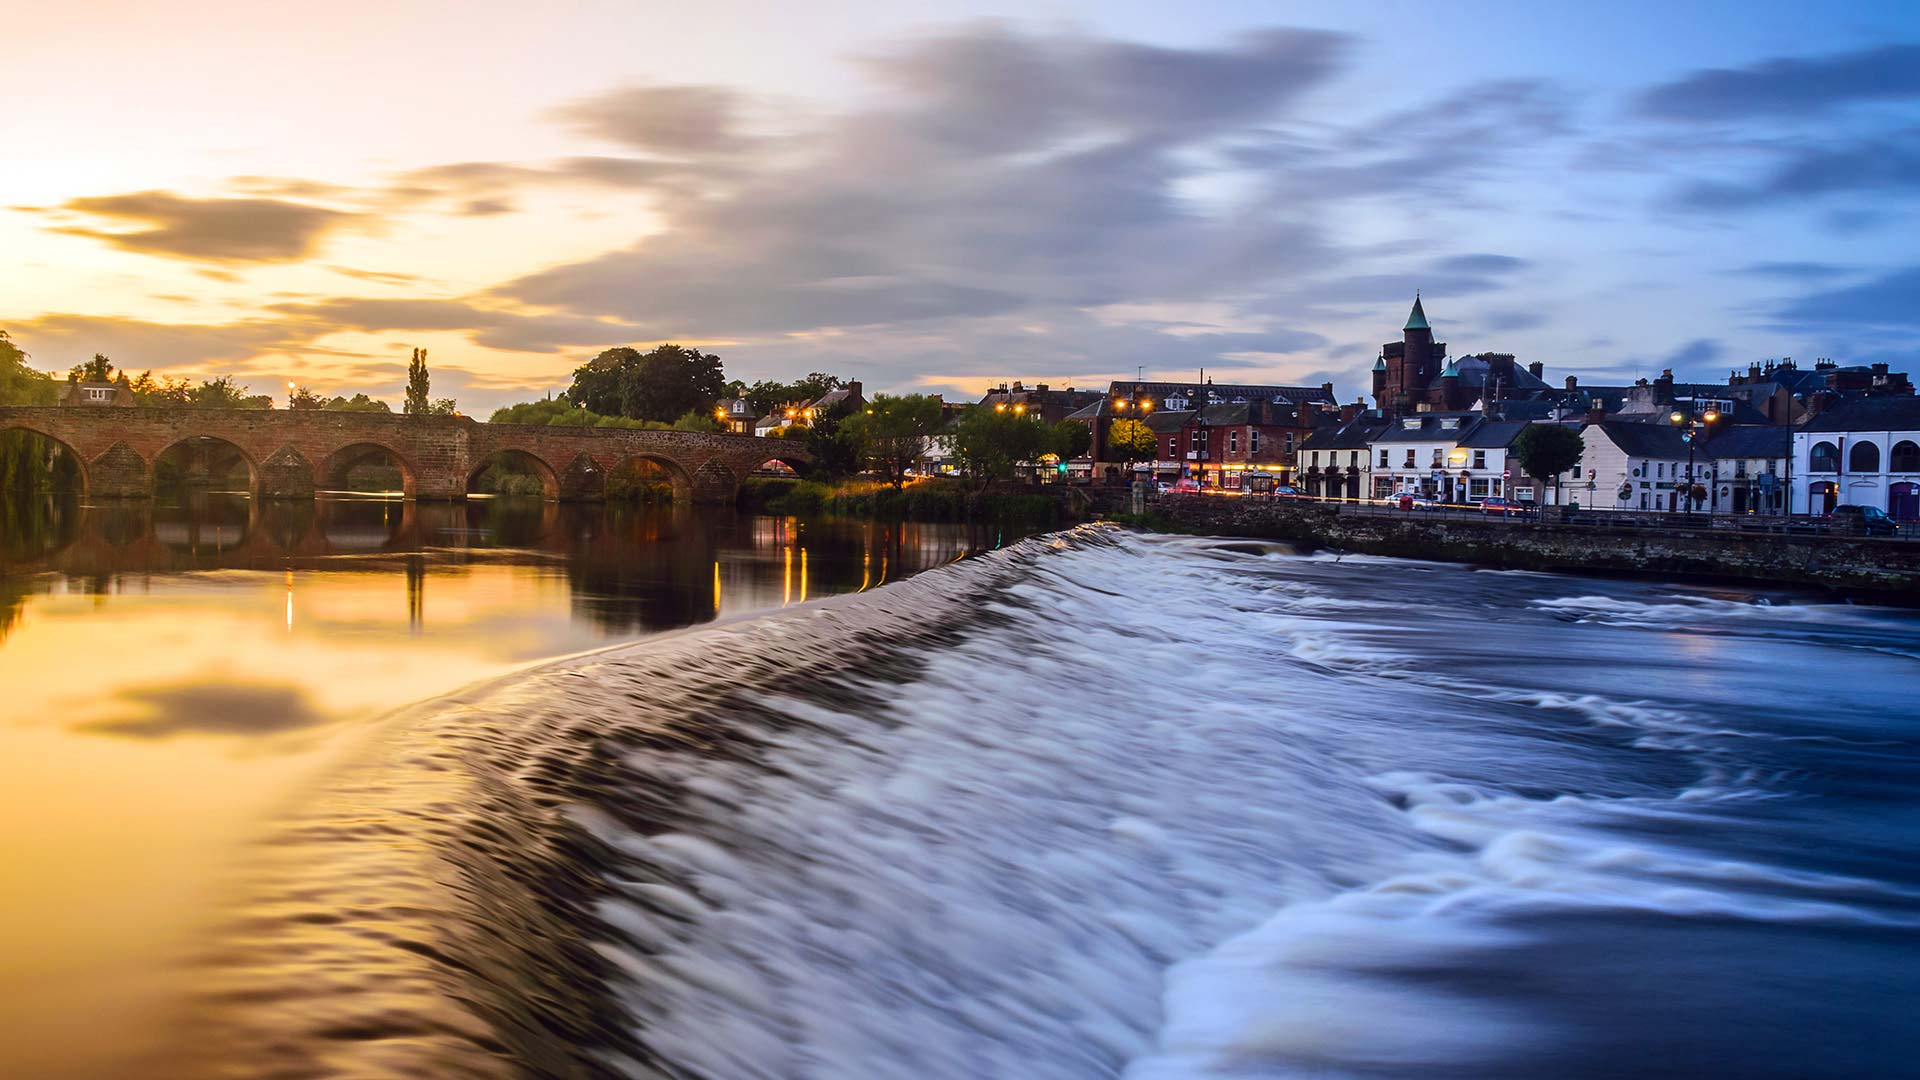 Panorama to illustrate dating in dumfries